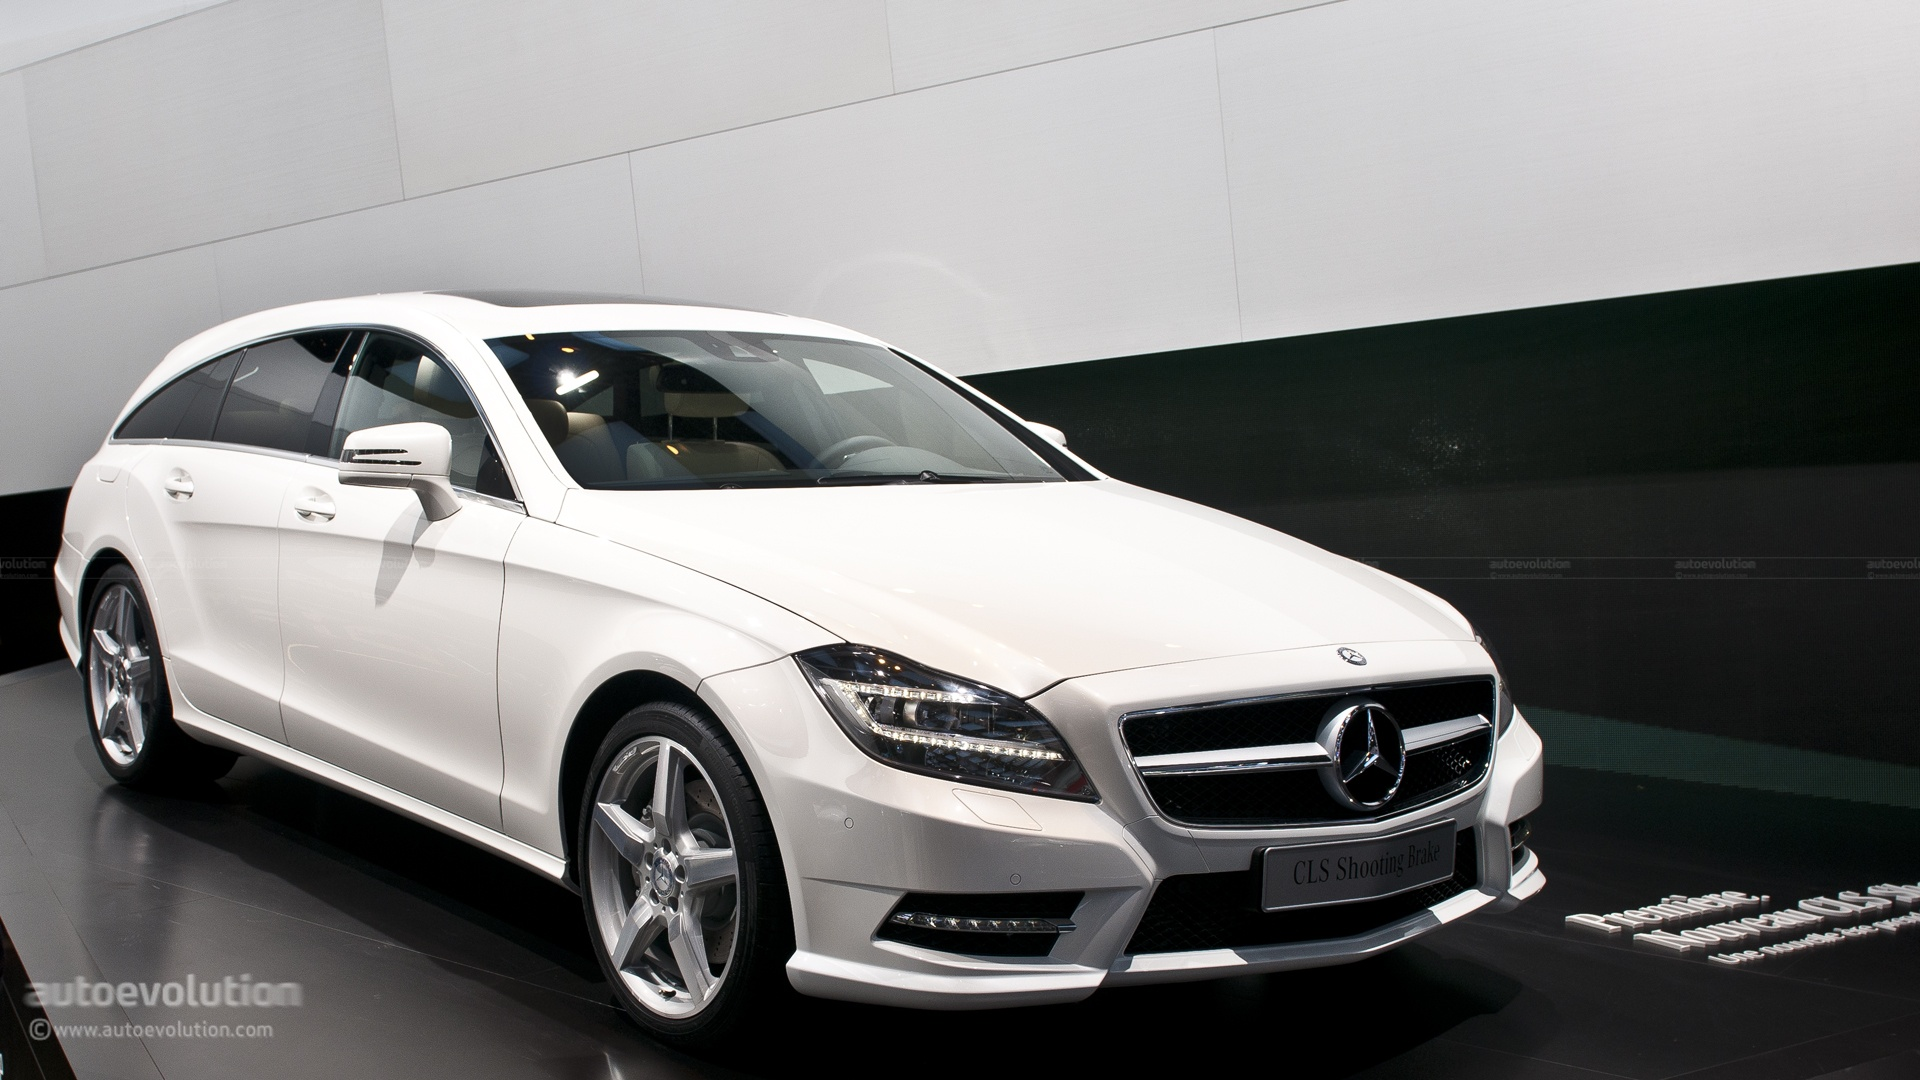 paris 2012 mercedes cls shooting brake live photos. Black Bedroom Furniture Sets. Home Design Ideas